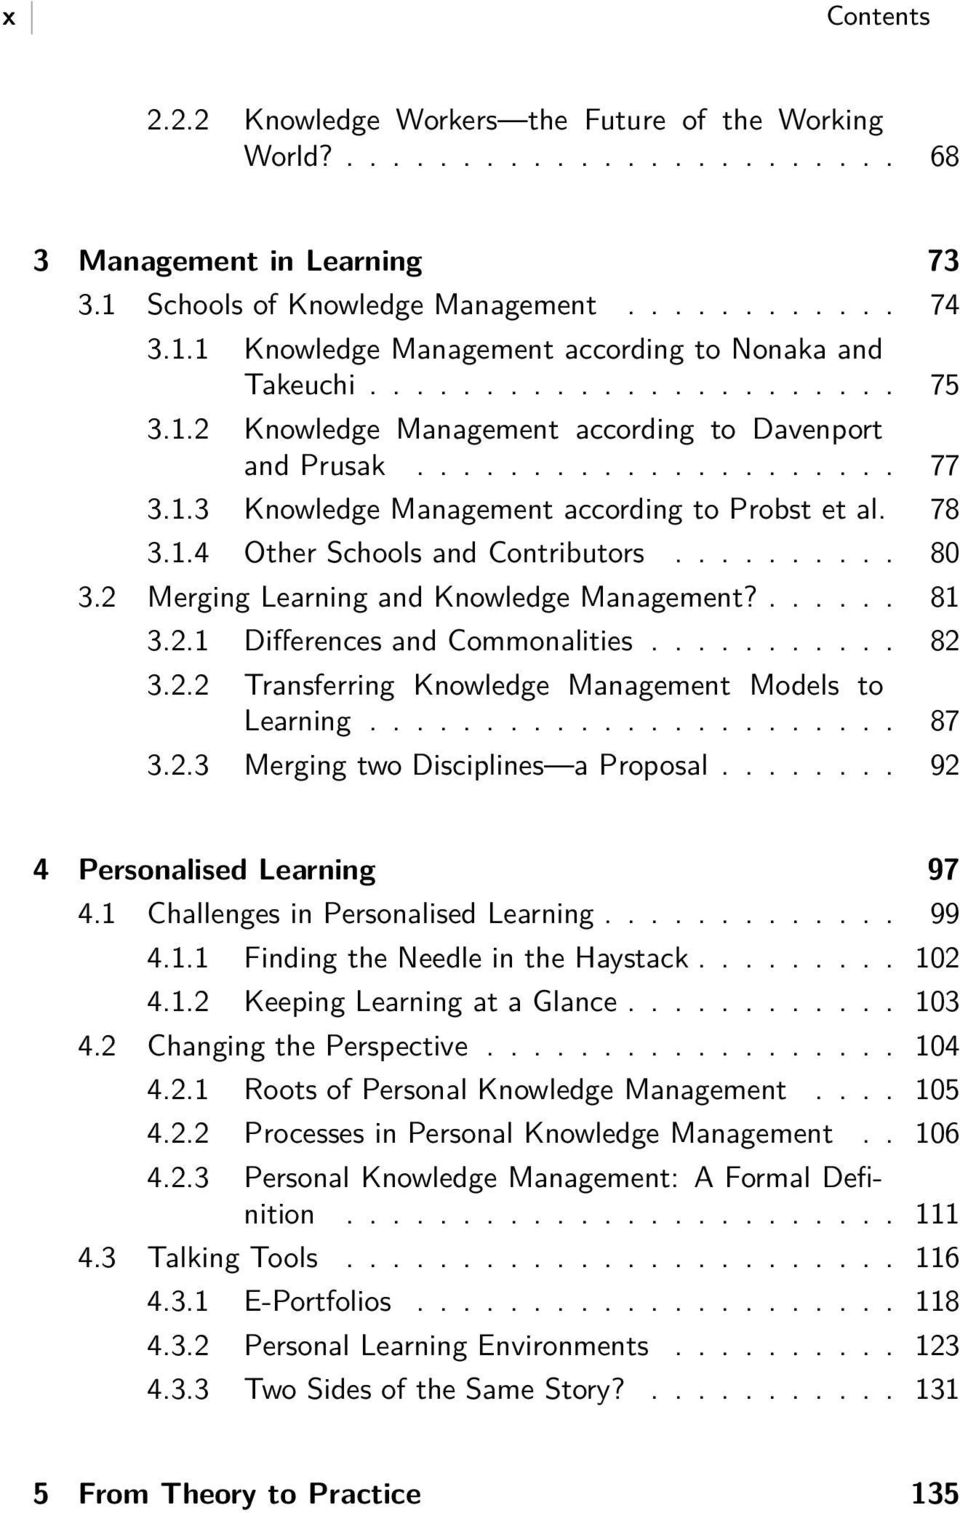 ......... 80 3.2 Merging Learning and Knowledge Management?...... 81 3.2.1 Differences and Commonalities........... 82 3.2.2 Transferring Knowledge Management Models to Learning....................... 87 3.